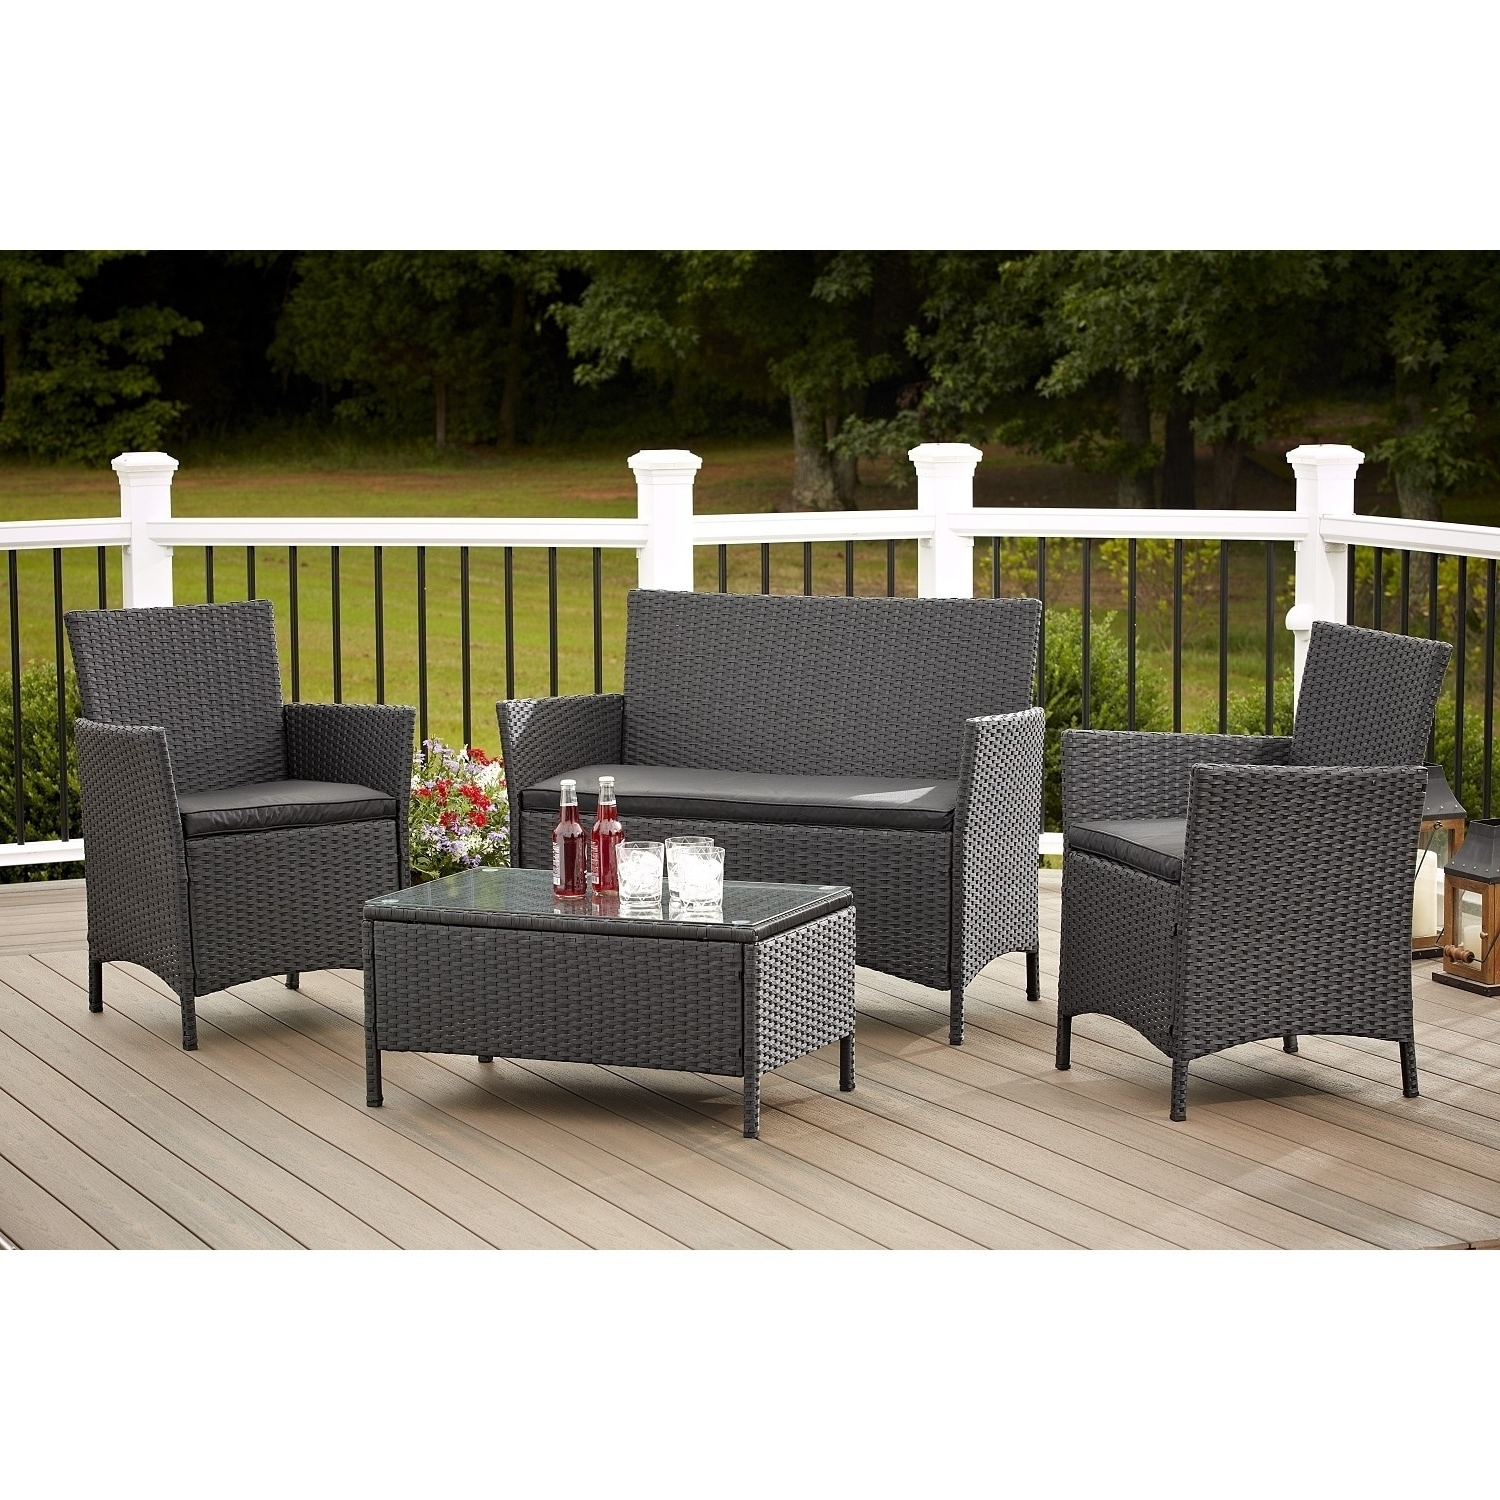 2018 Shop Avenue Greene 4 Piece Resin Wicker Deep Seating Patio Intended For Wicker 4pc Patio Conversation Sets With Navy Cushions (View 7 of 20)